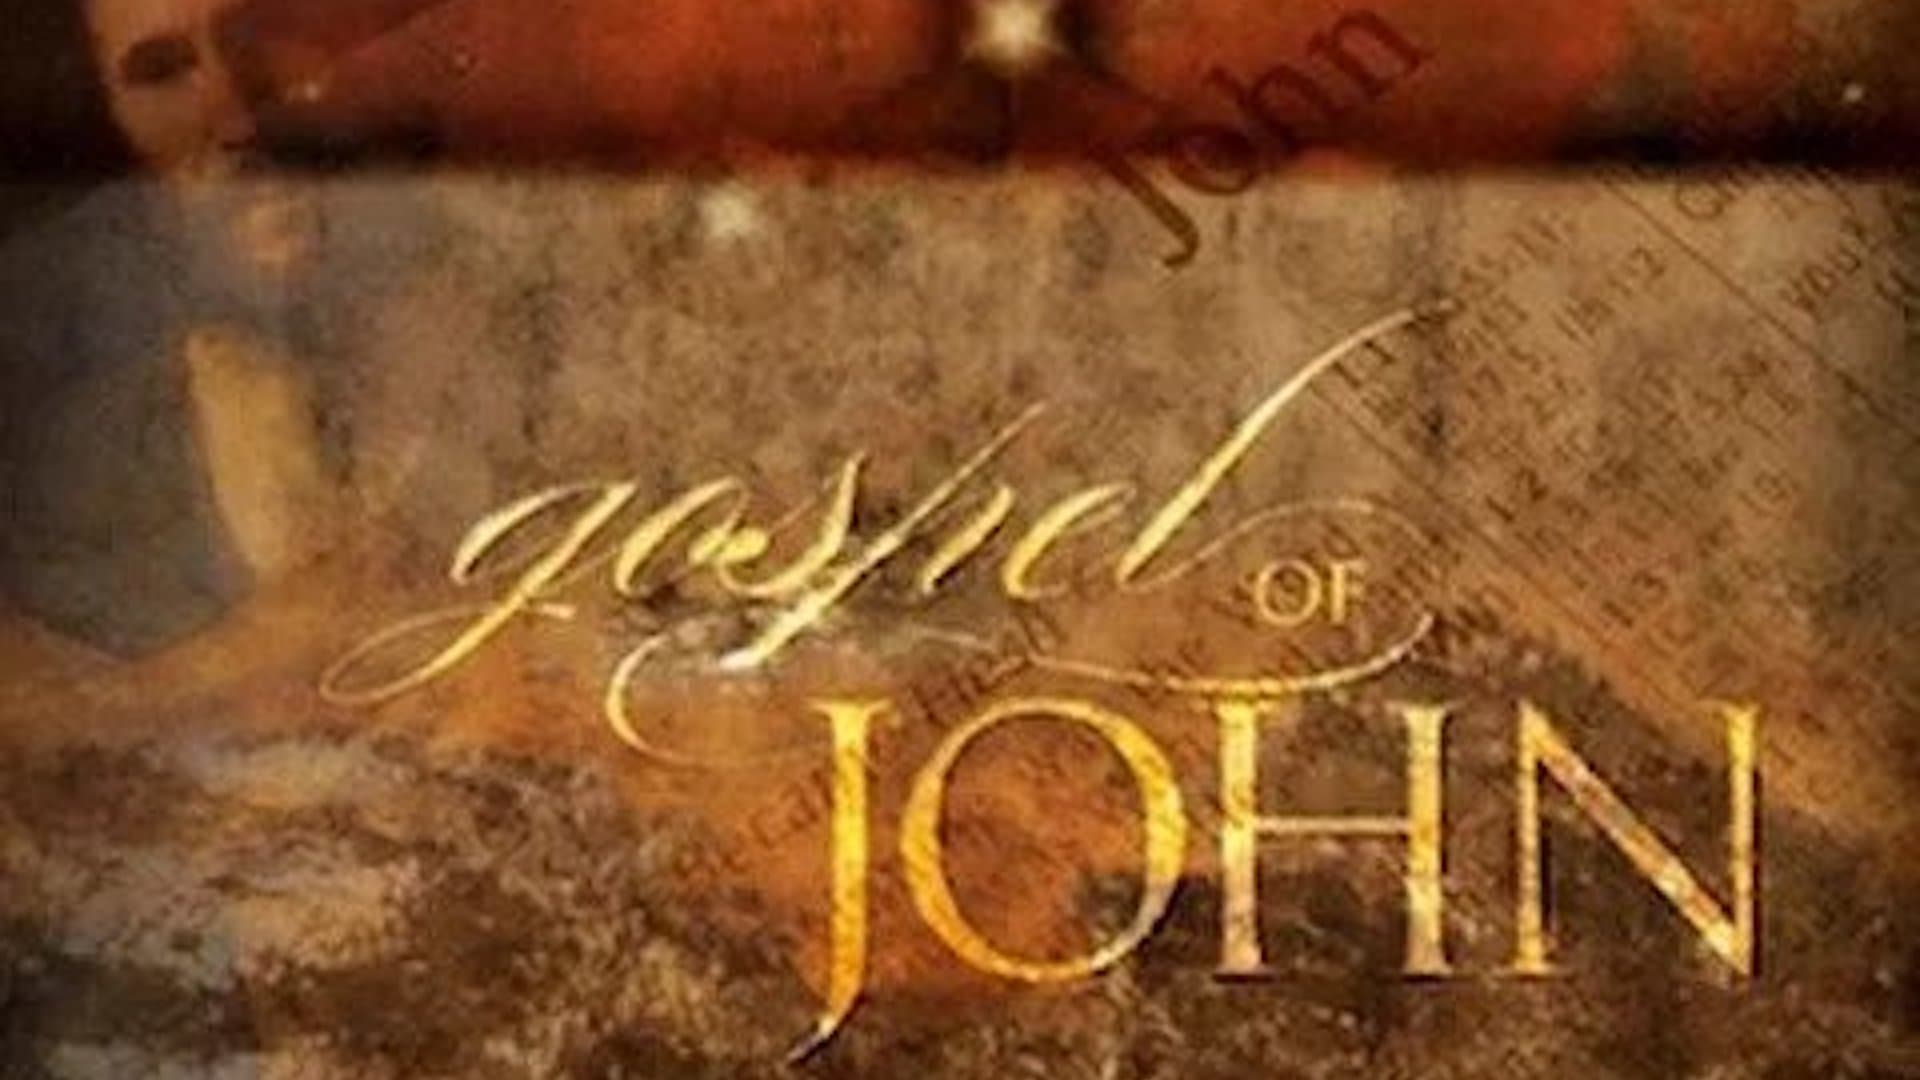 Gospel of John: Fullness / John 1:14-18